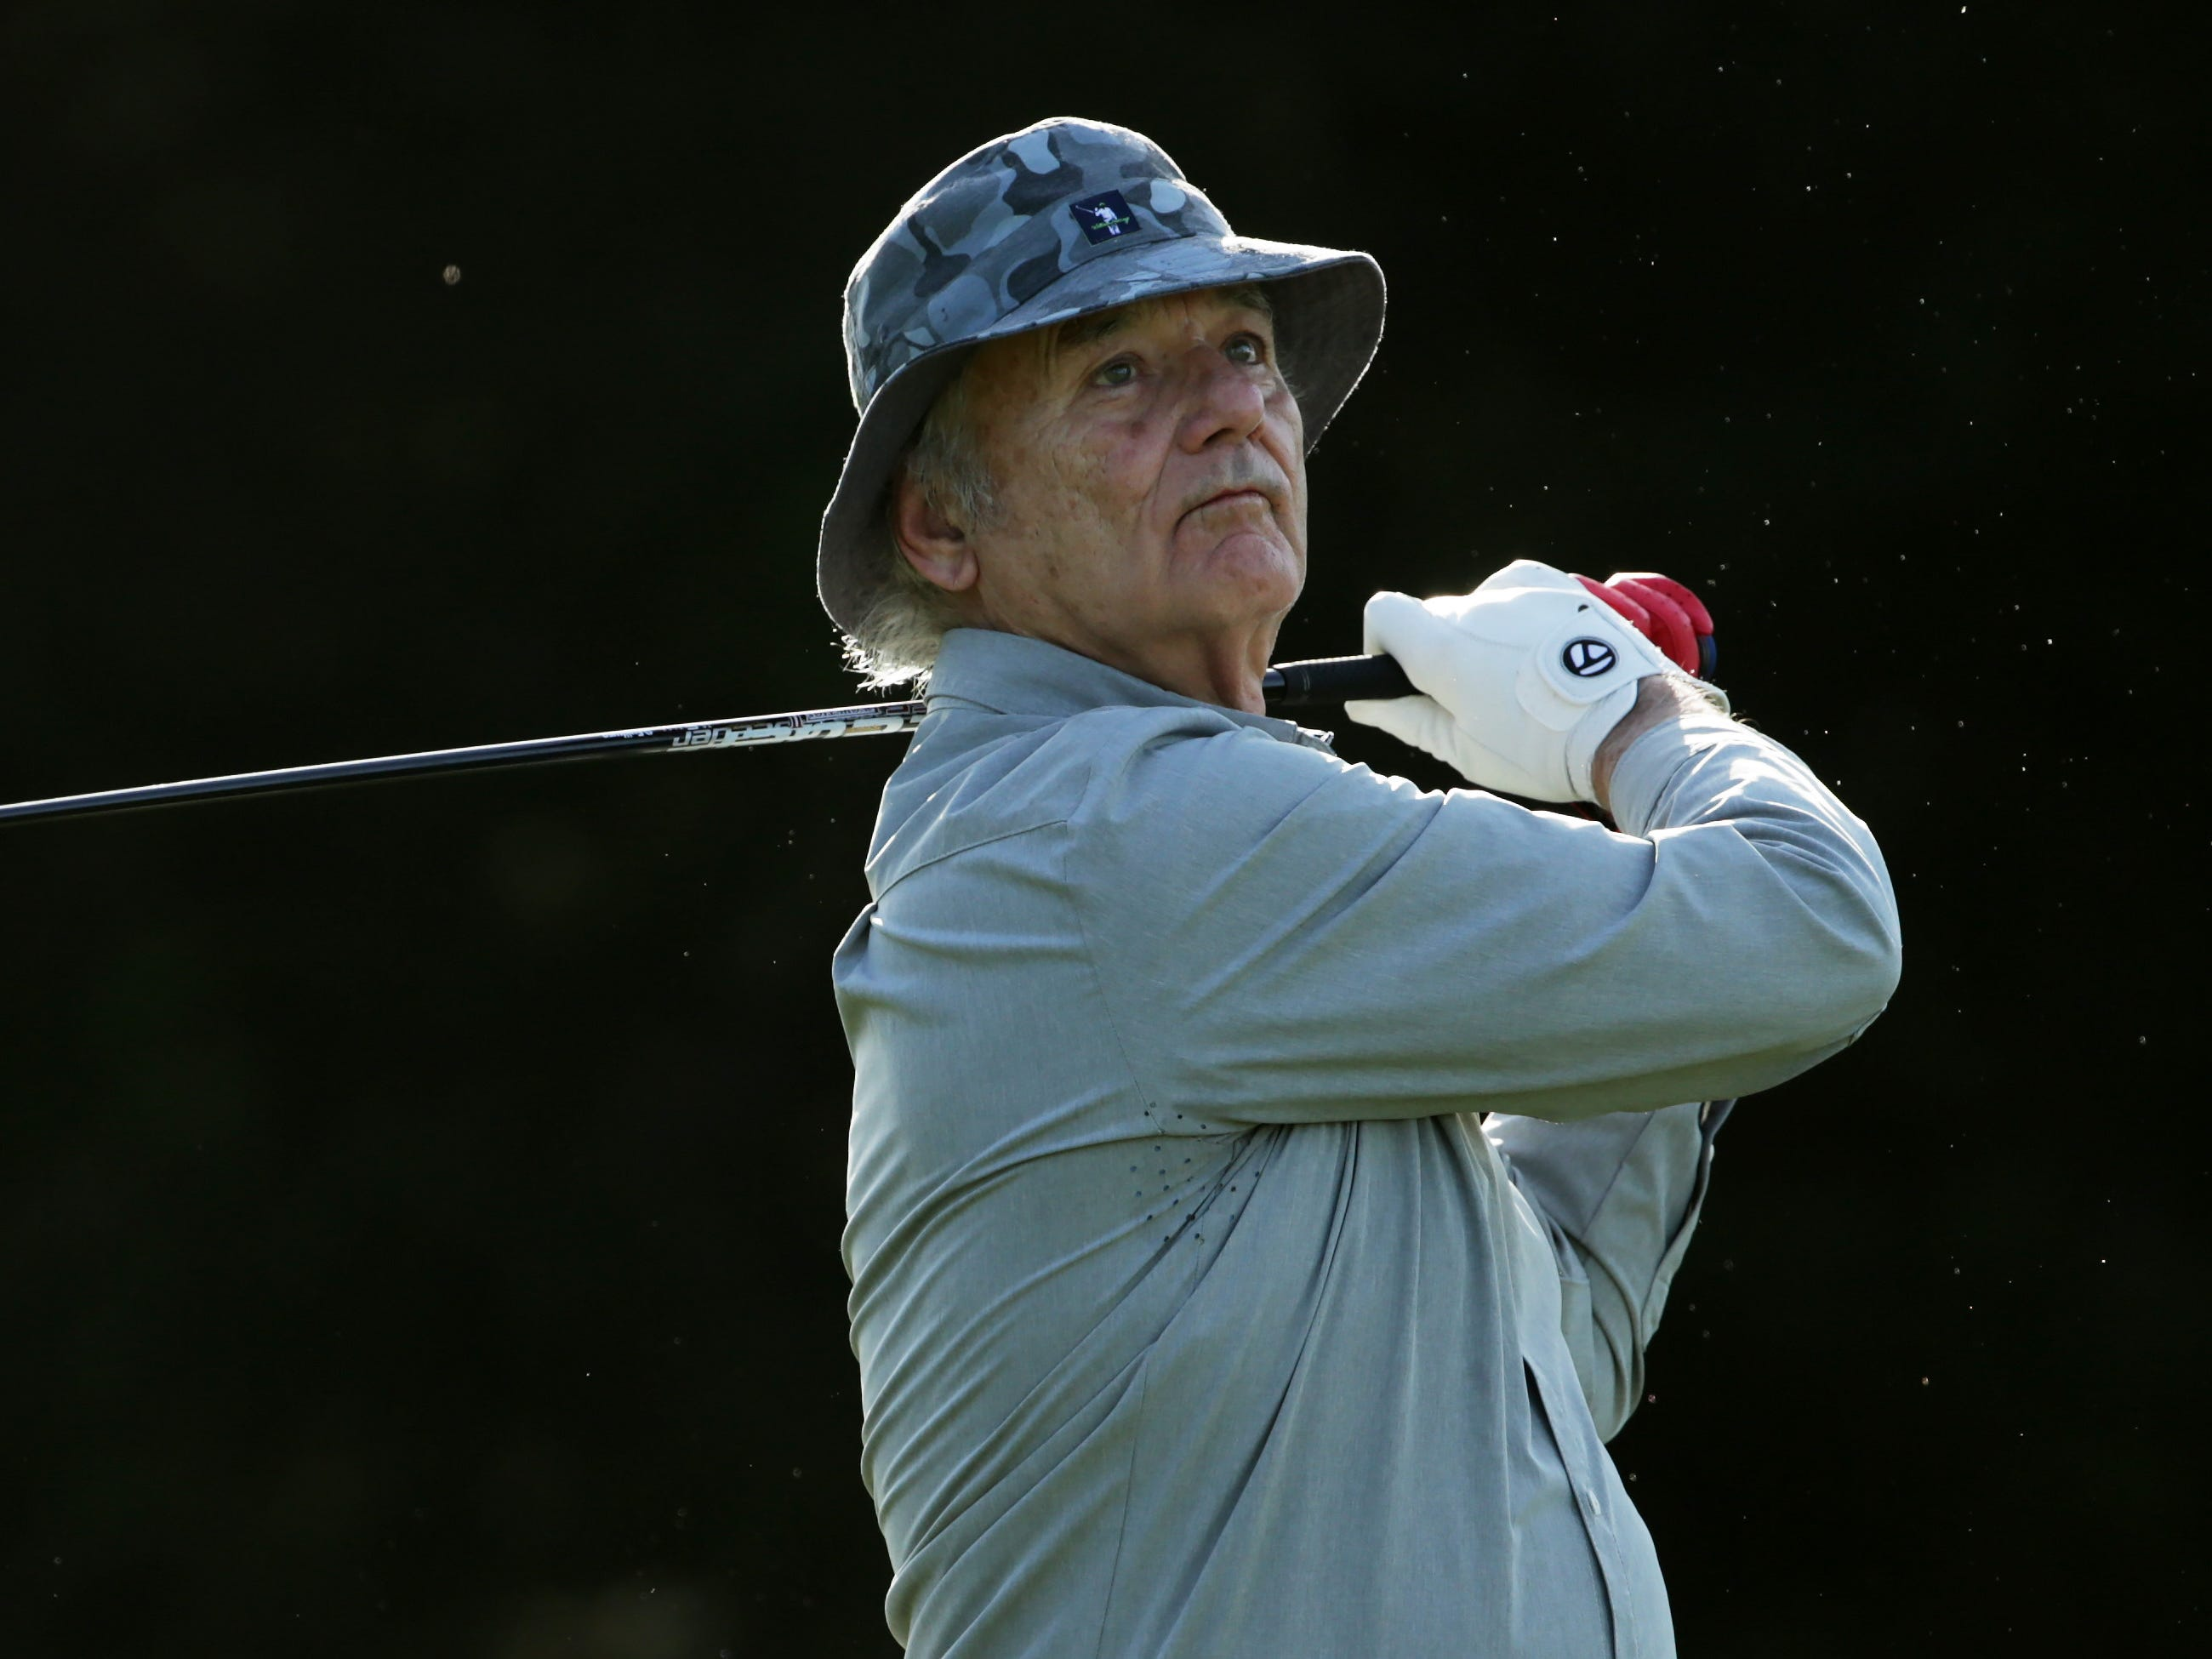 Actor Bill Murray plays his shot from the fifth tee during the first round of the AT&T Pebble Beach Pro-Am.